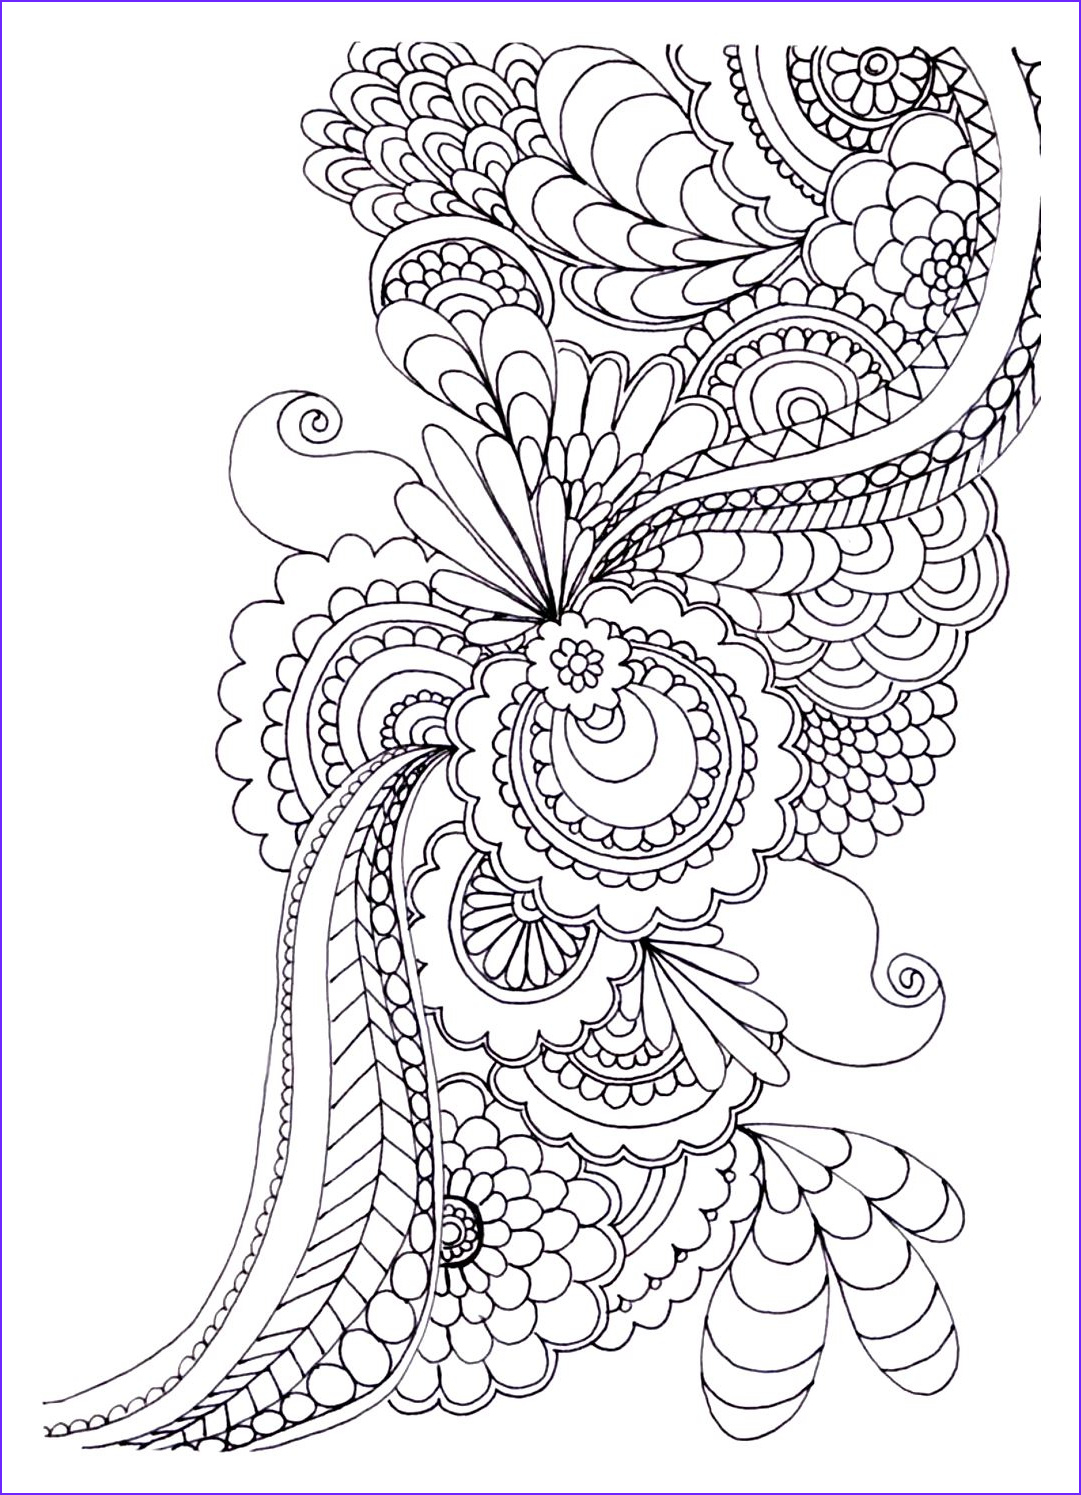 Coloring Images for Adults New Image 20 Free Adult Colouring Pages the organised Housewife